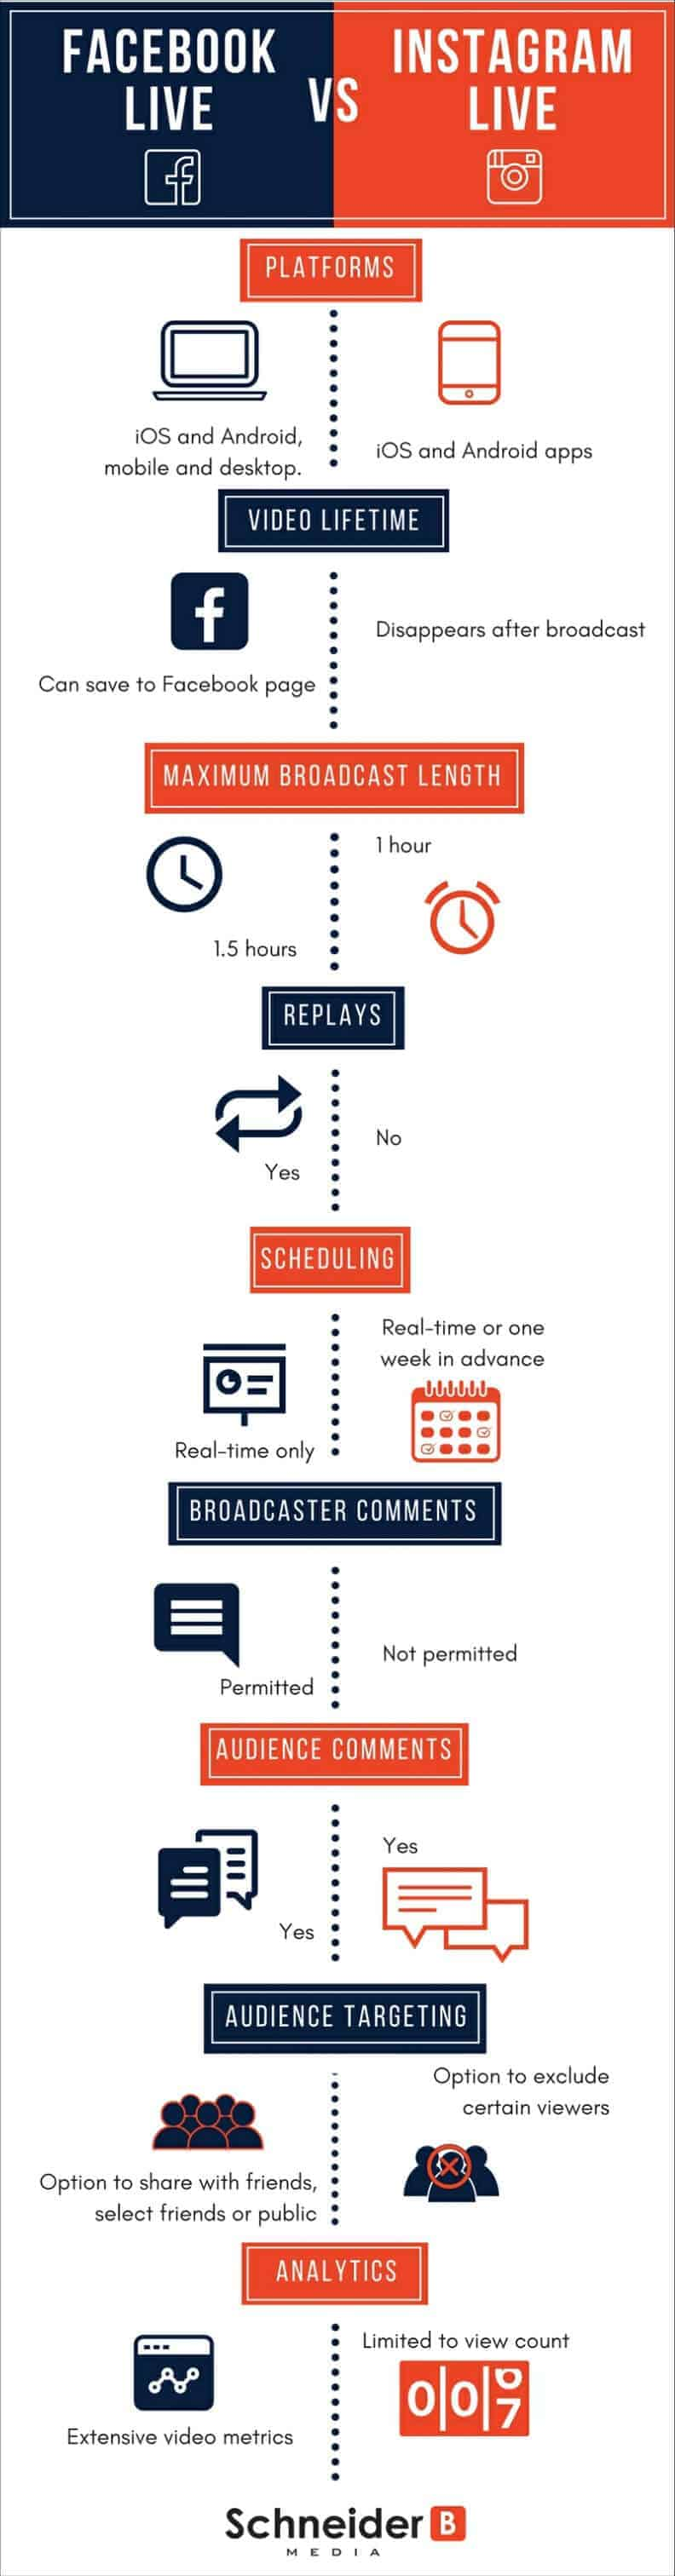 Facebook Live vs Instagram Live Infographic